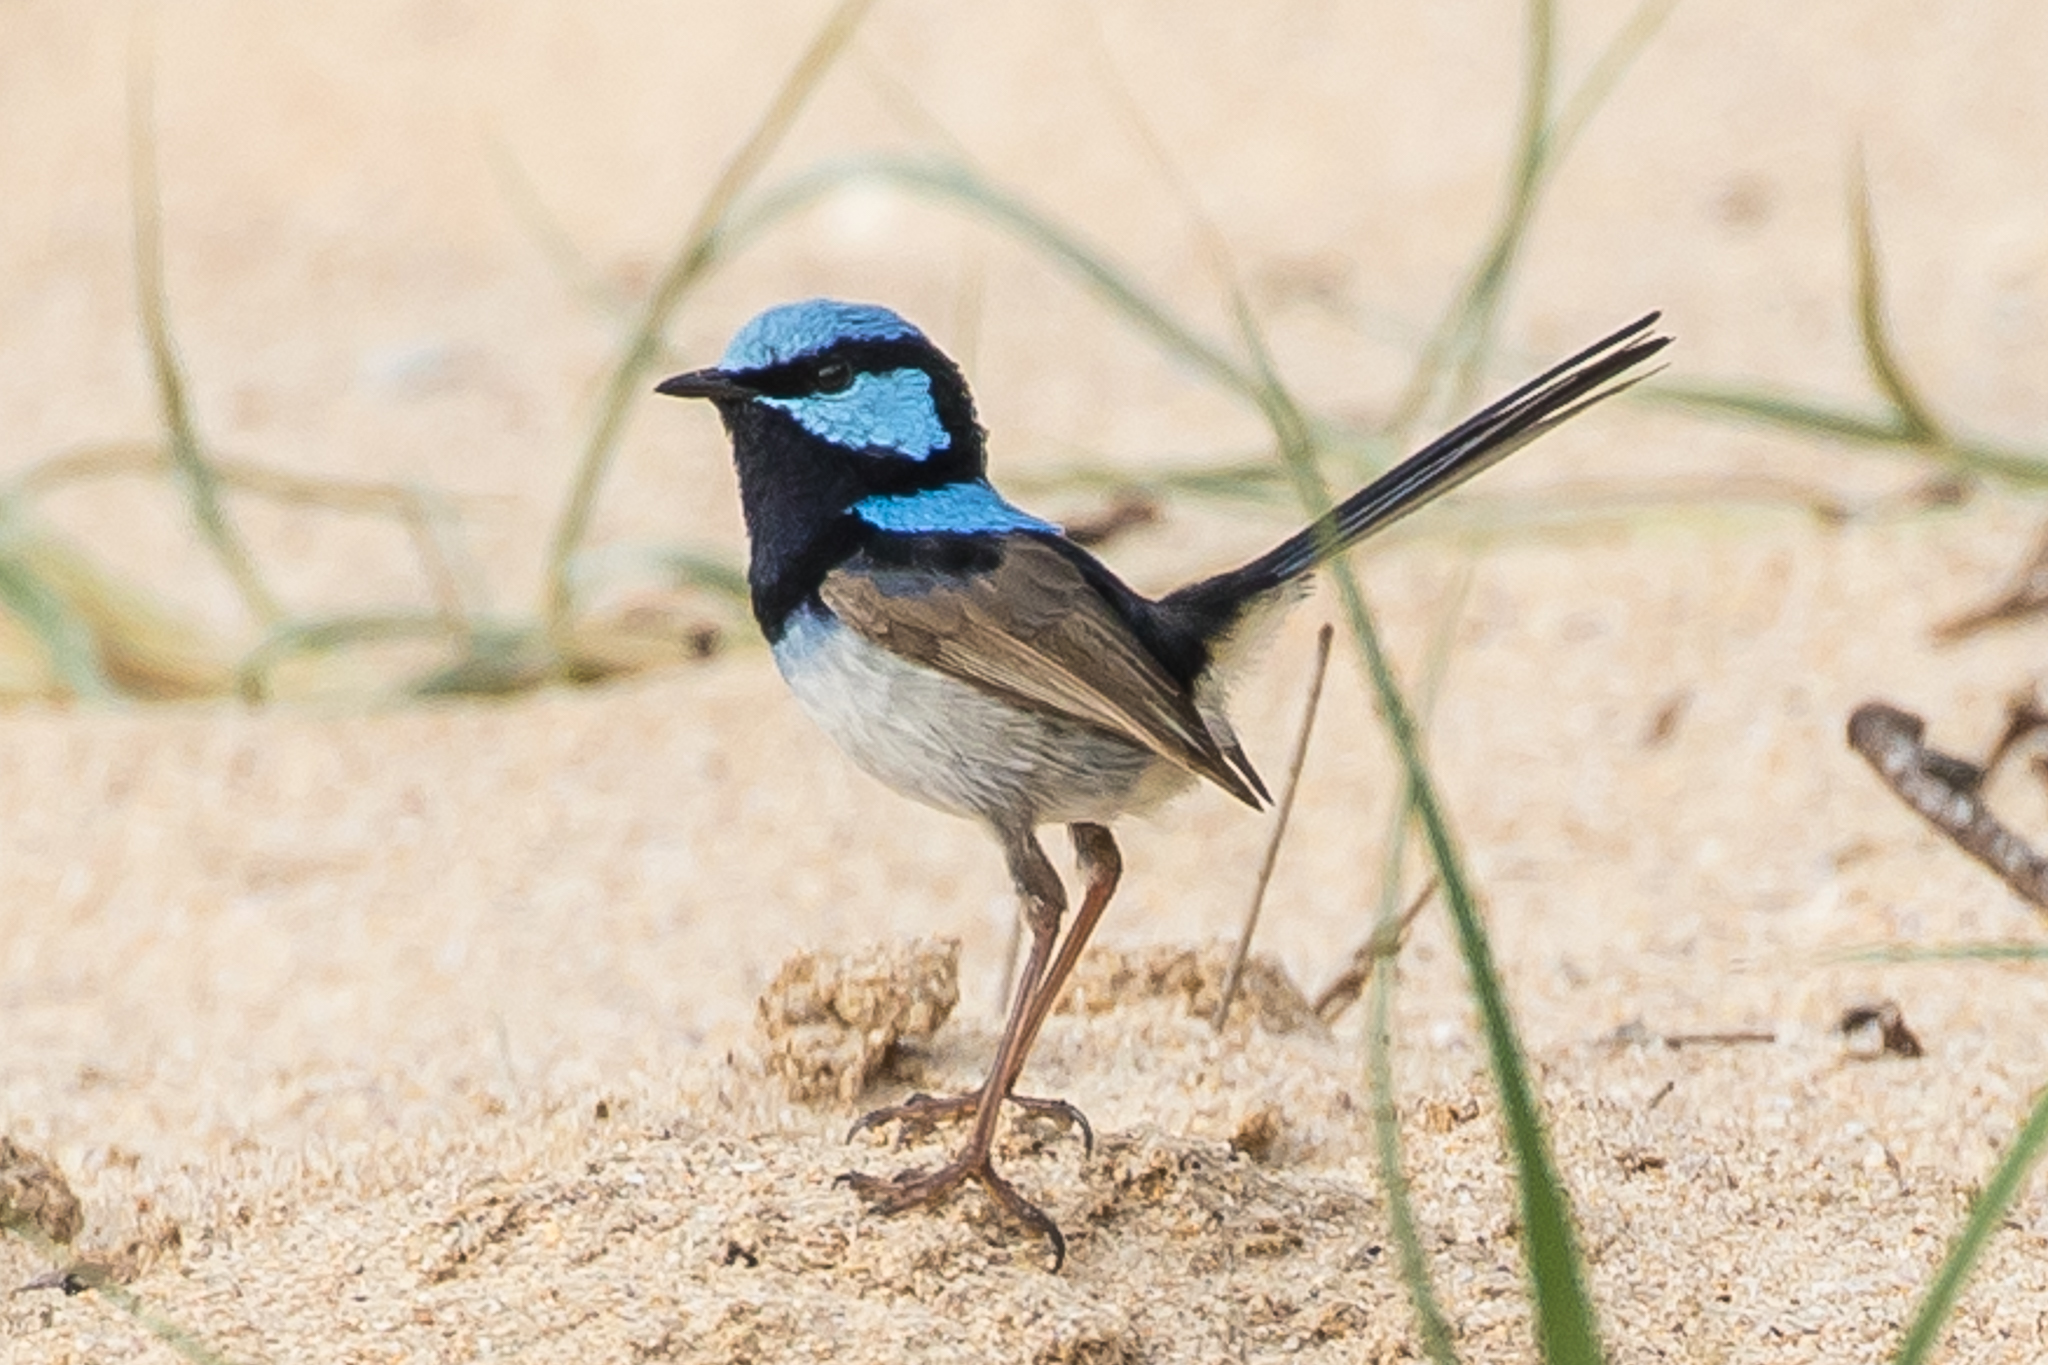 This Superb Fairy-wren is on the beach today. More usually it will be feeding in low bush and grass, looking for insects. The Superb Fairy-wren is a common companion through the South Coast area.